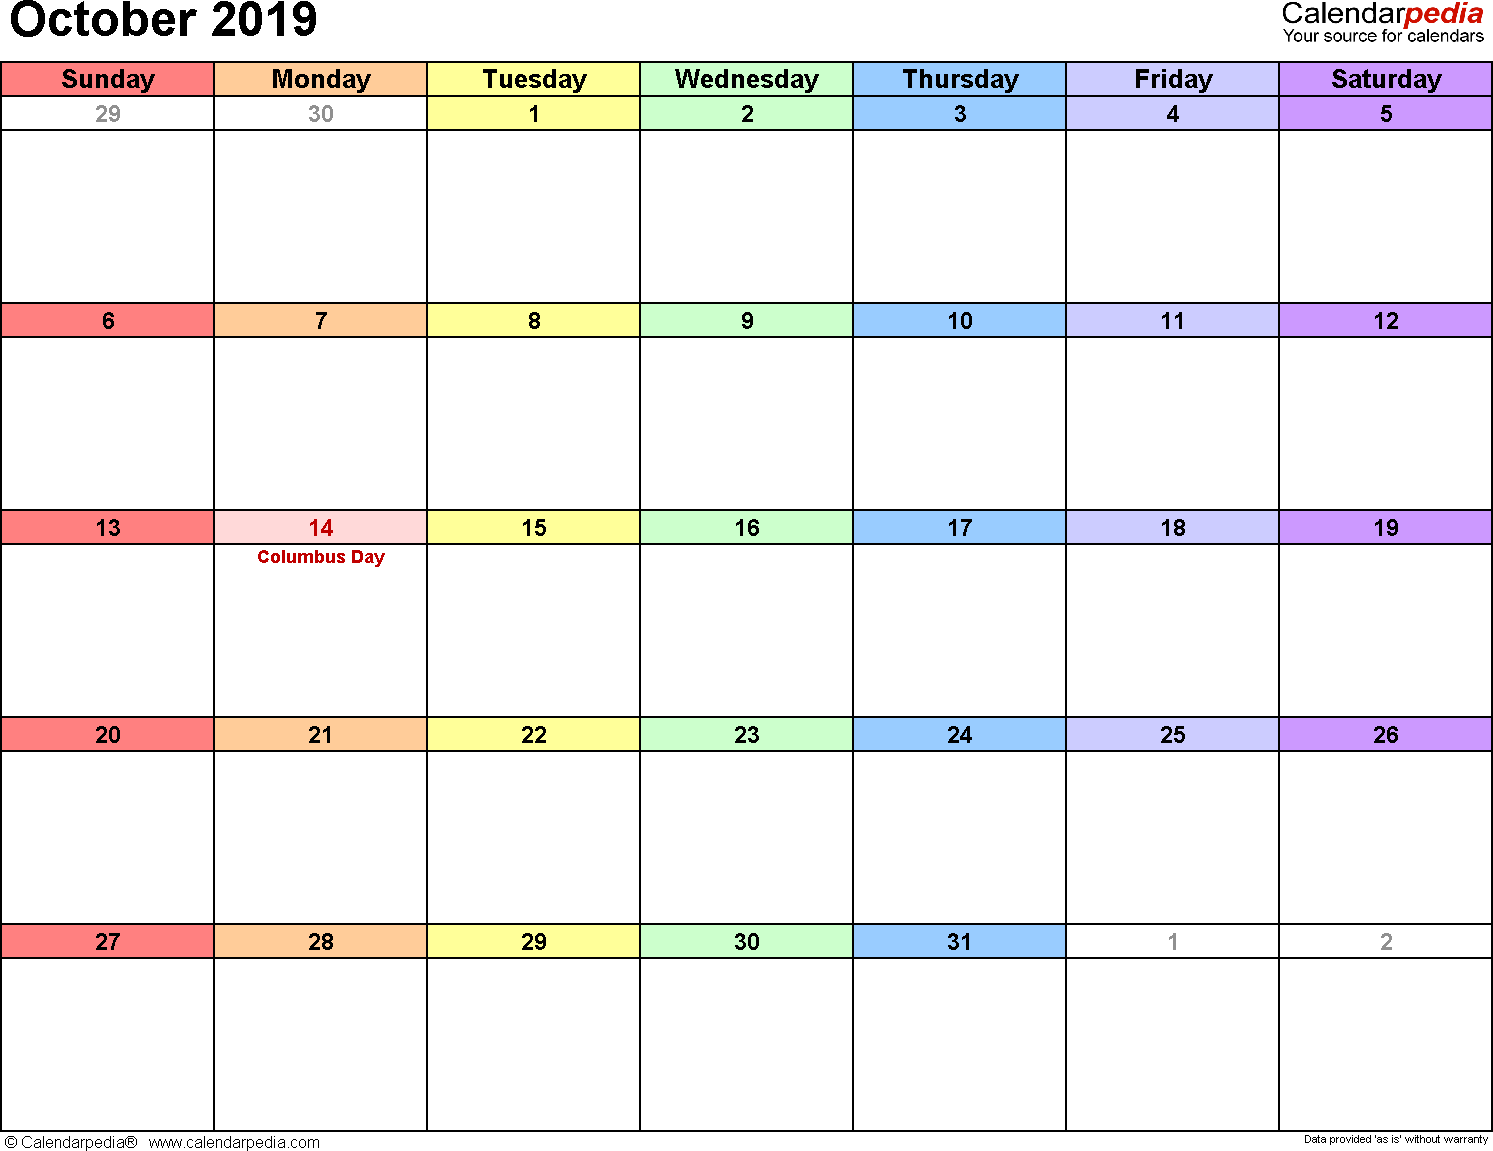 October 2019 calendar printable template